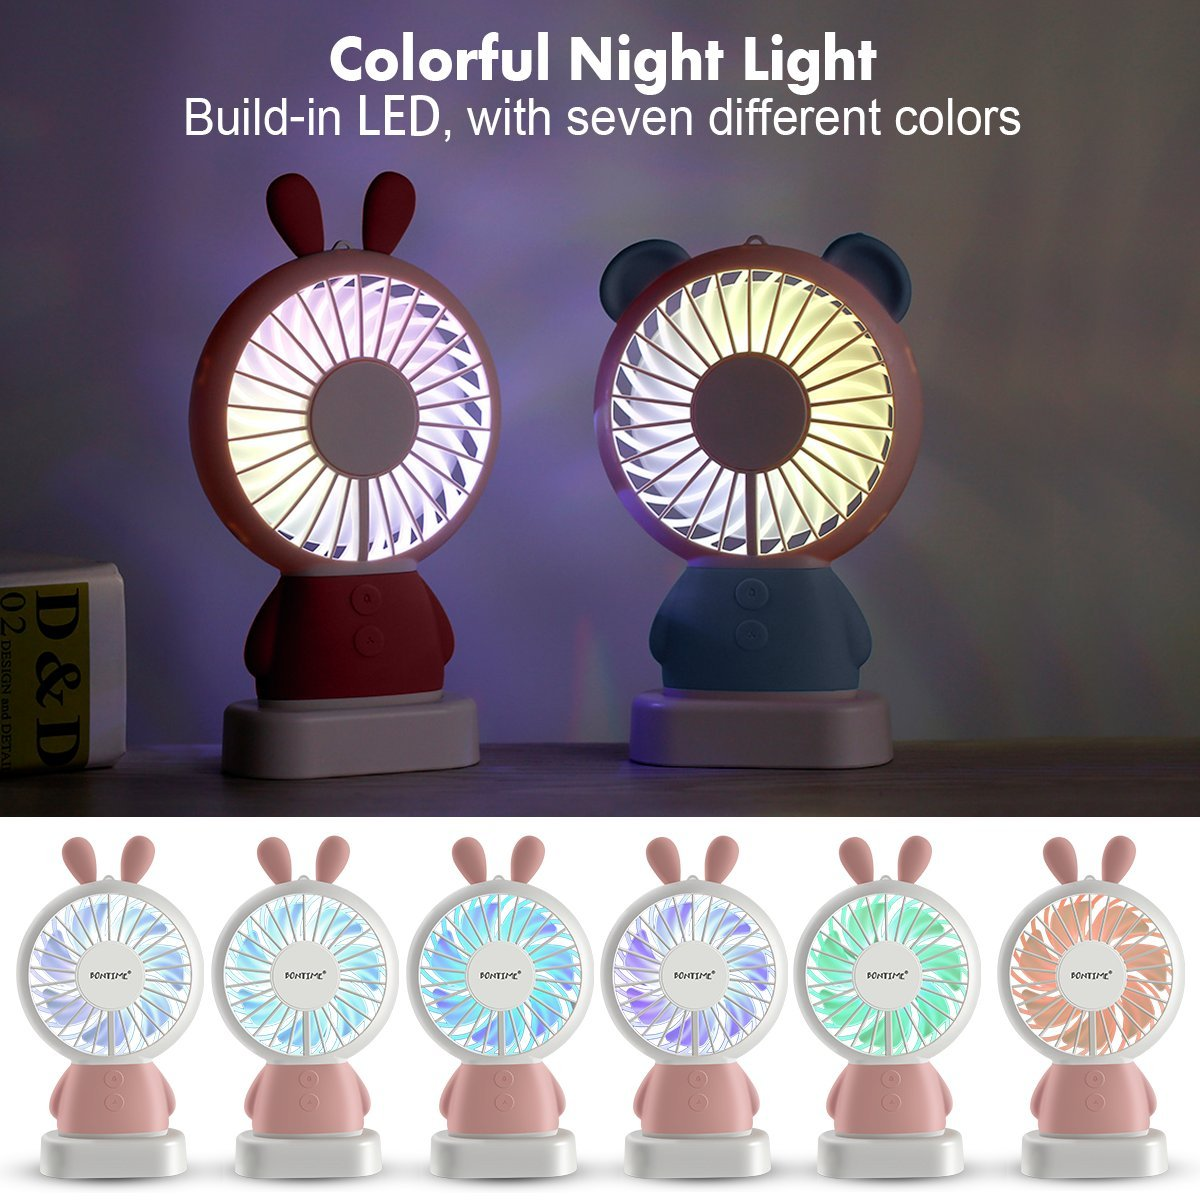 BONTIME Portable Fan - Mini Hand held Fan, Rechargeable USB Fan with Colorful Night Light, 2 Speeds, Cooling for Traveling, Fishing, Camping by BONTIME (Image #5)